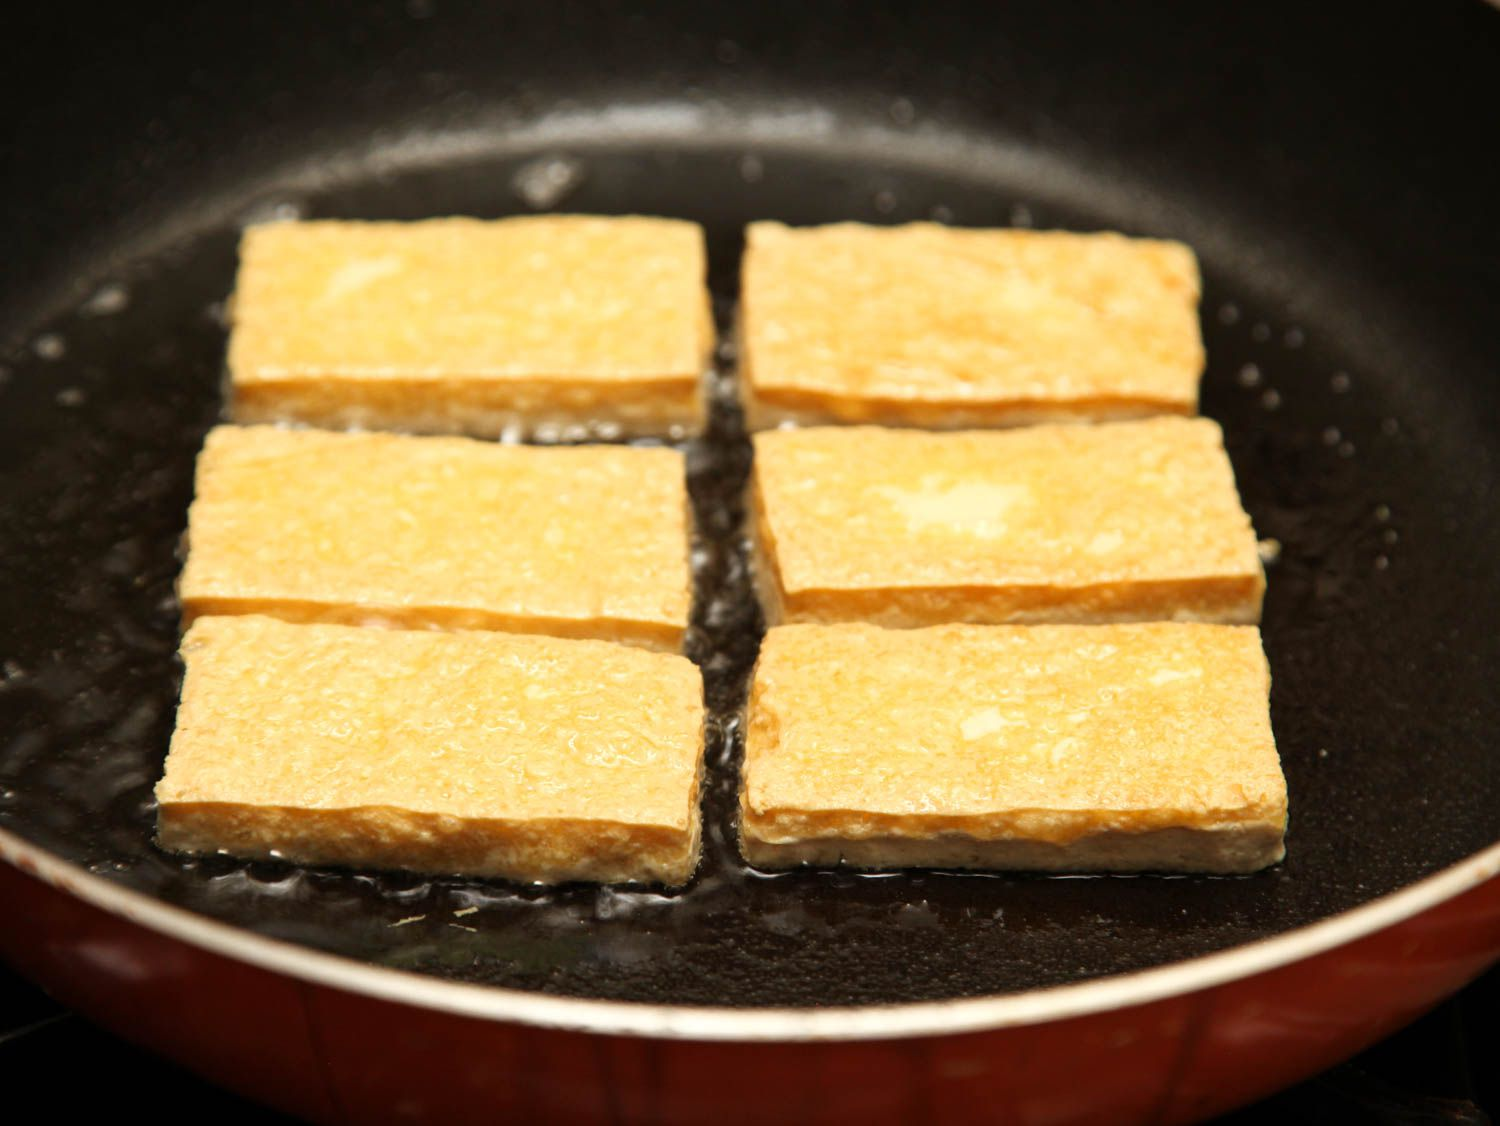 Tofu frying in a skillet, browned on top side.